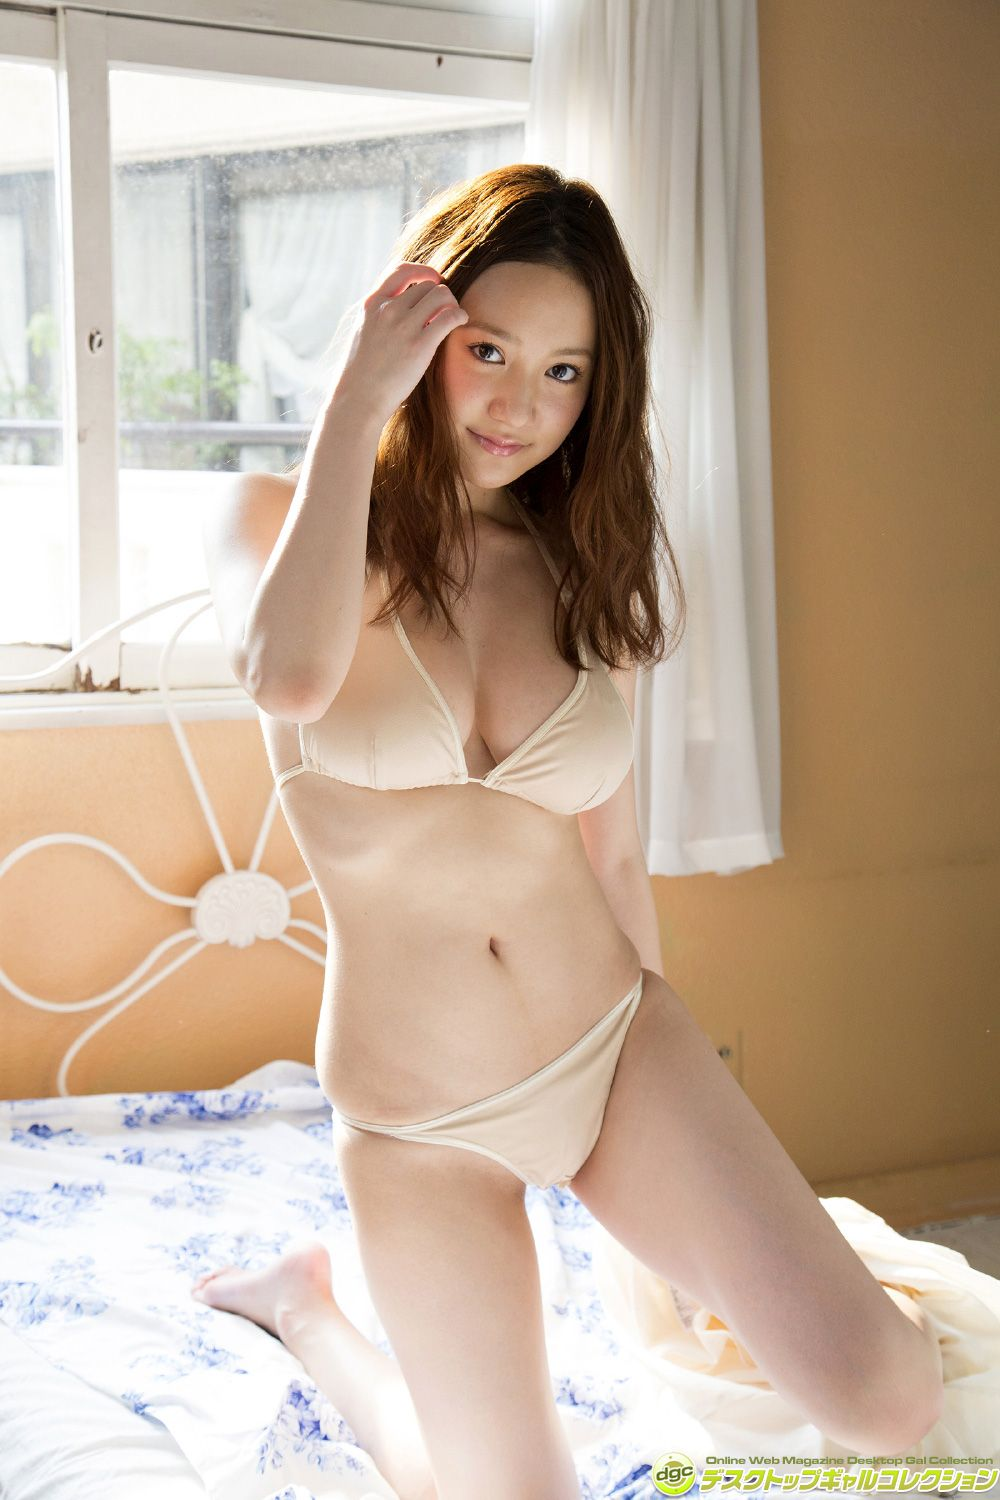 She has beautiful white, clear skin and marshmallow G cups019